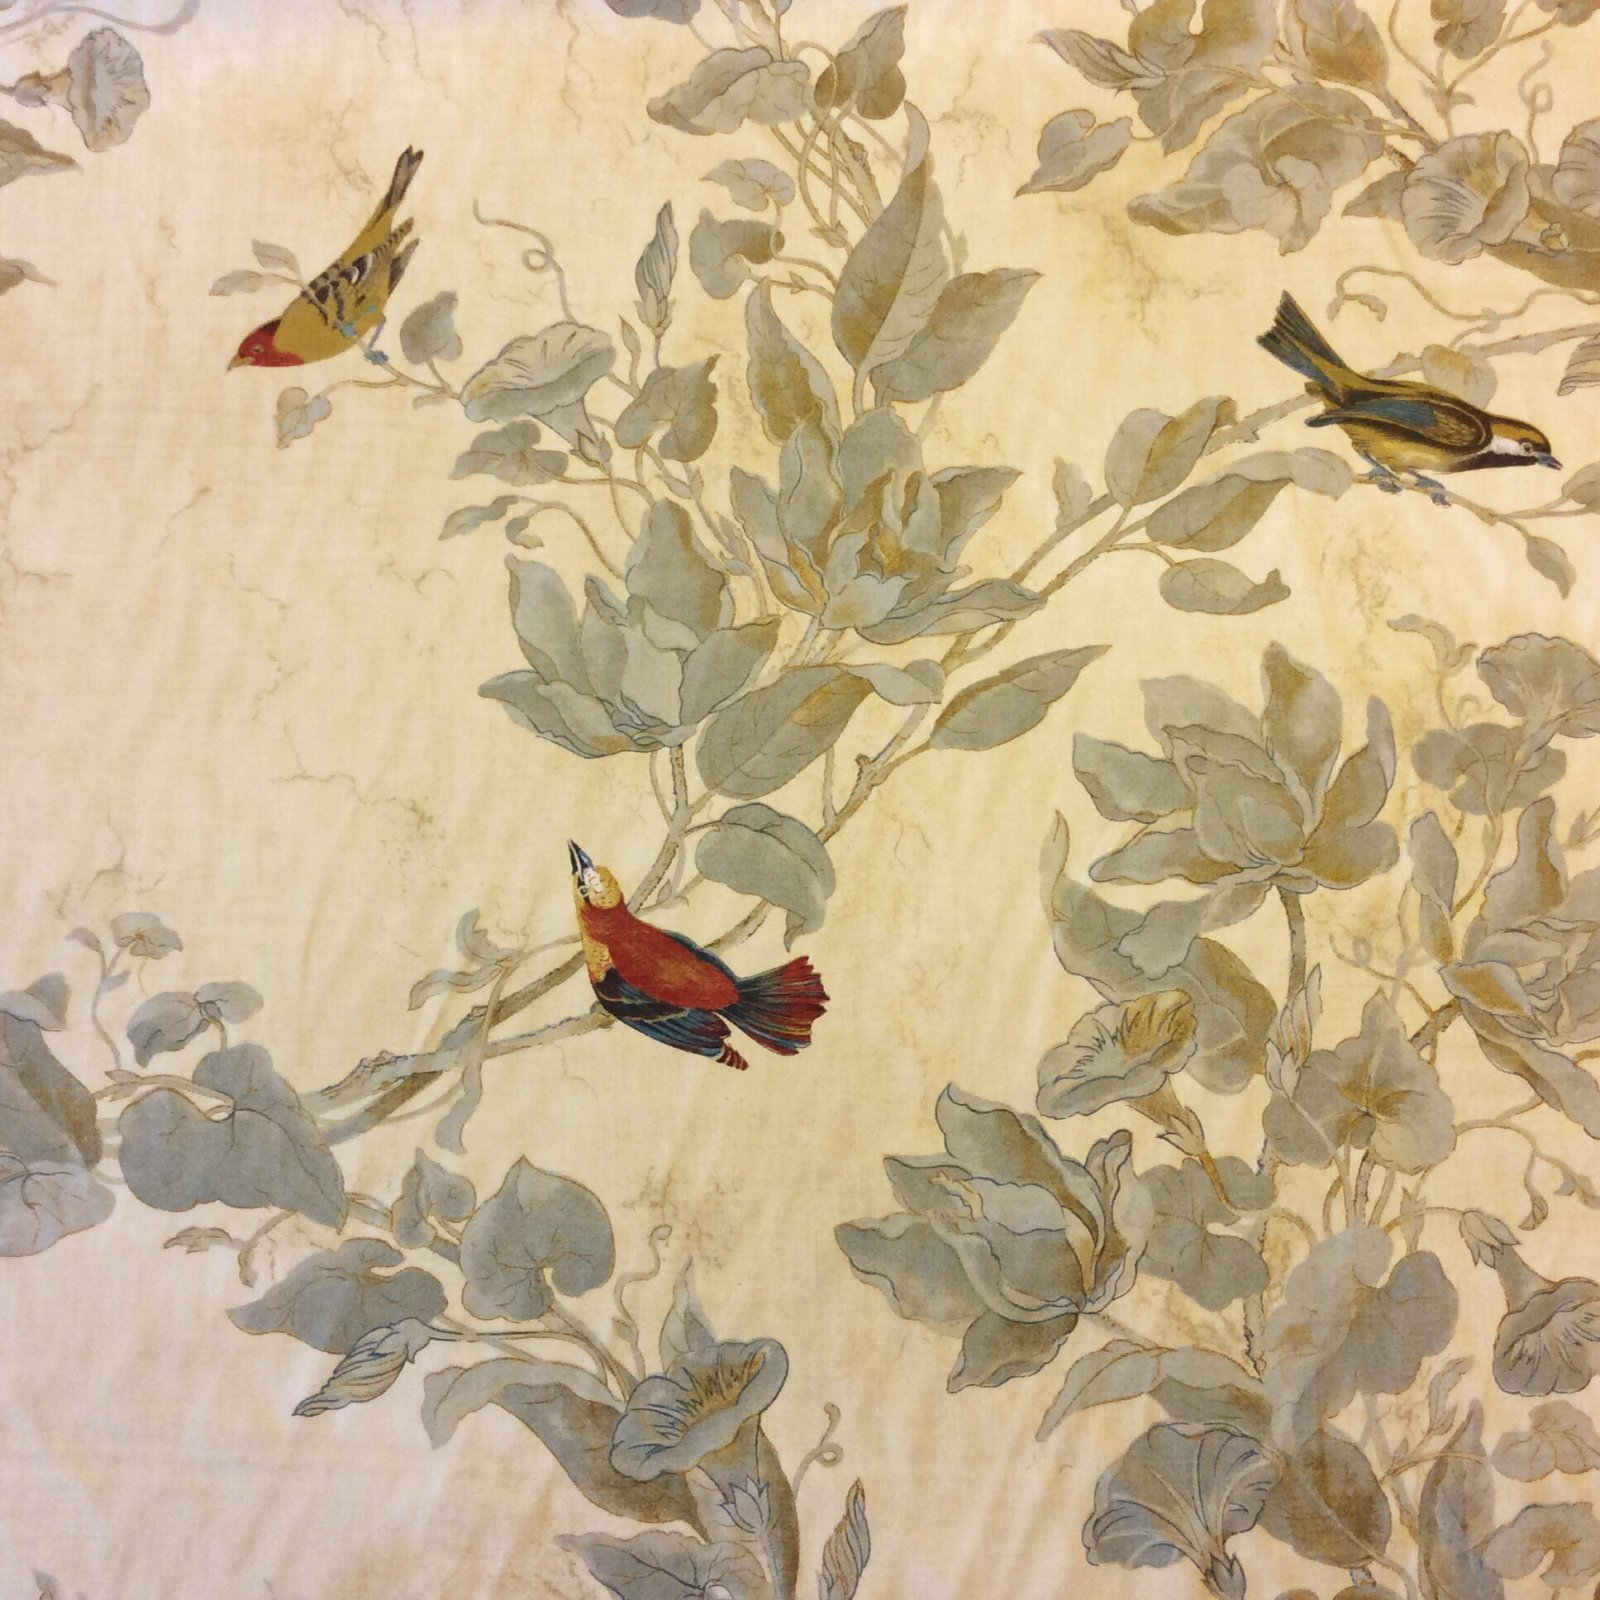 Watercolor Songbirds Beautiful Ilrated Hand Colored Bird Cotton Fabric Drapery Ivory Hd607d